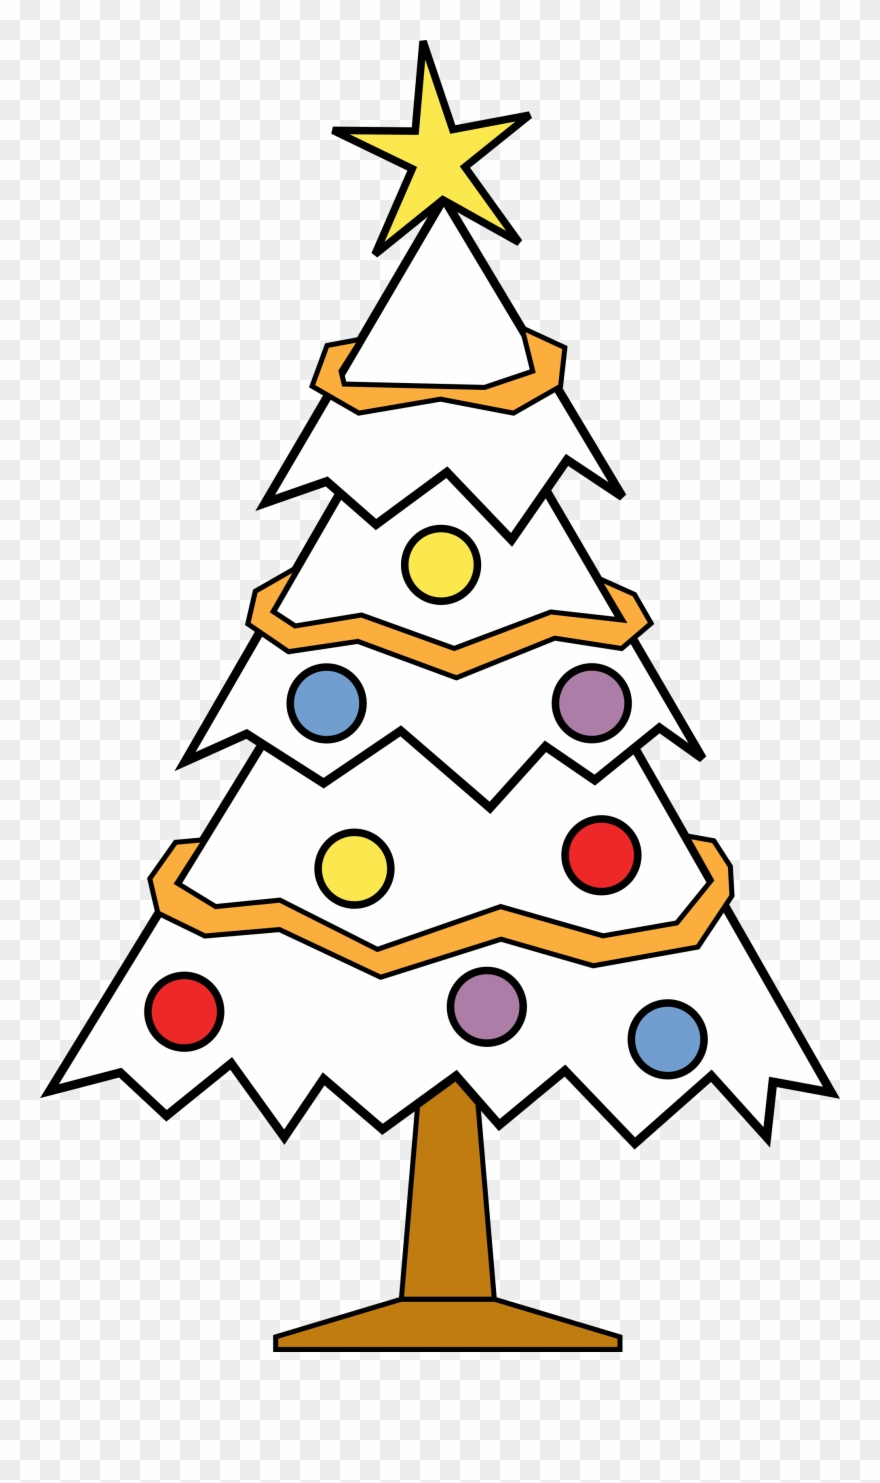 White christmas tree design clipart picture royalty free Free Black And White Christmas Tree Jpg Freeuse Download ... picture royalty free